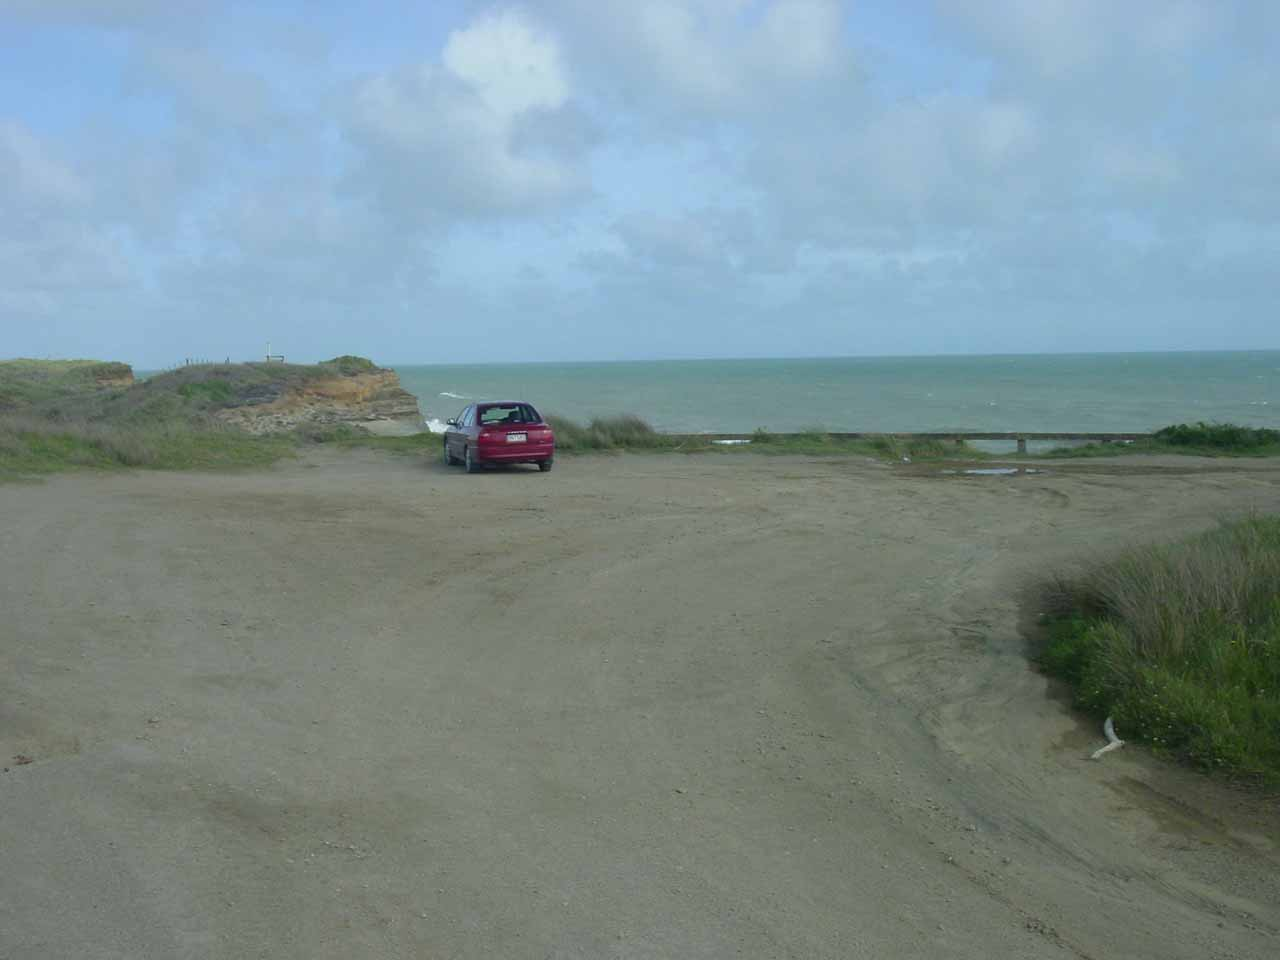 Our car parked at Waverley Beach